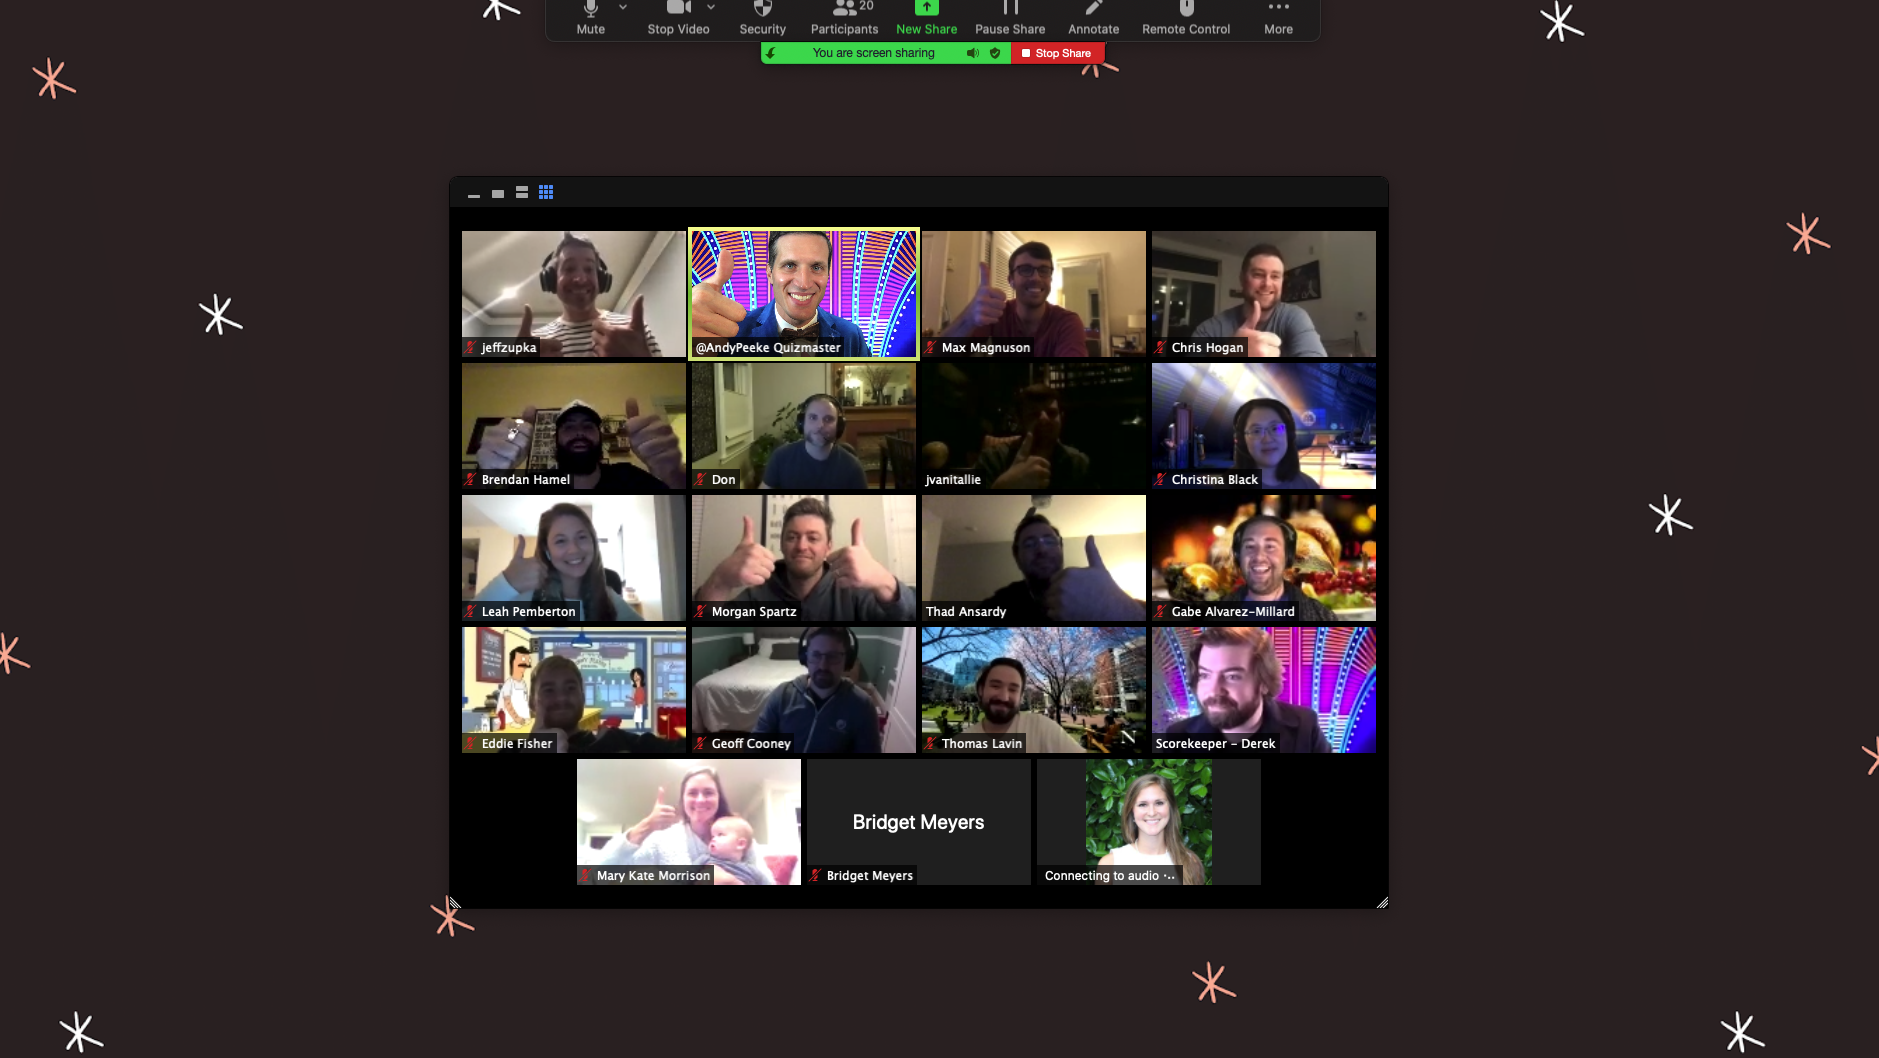 A screenshot of a zoom meeting with 19 participants.